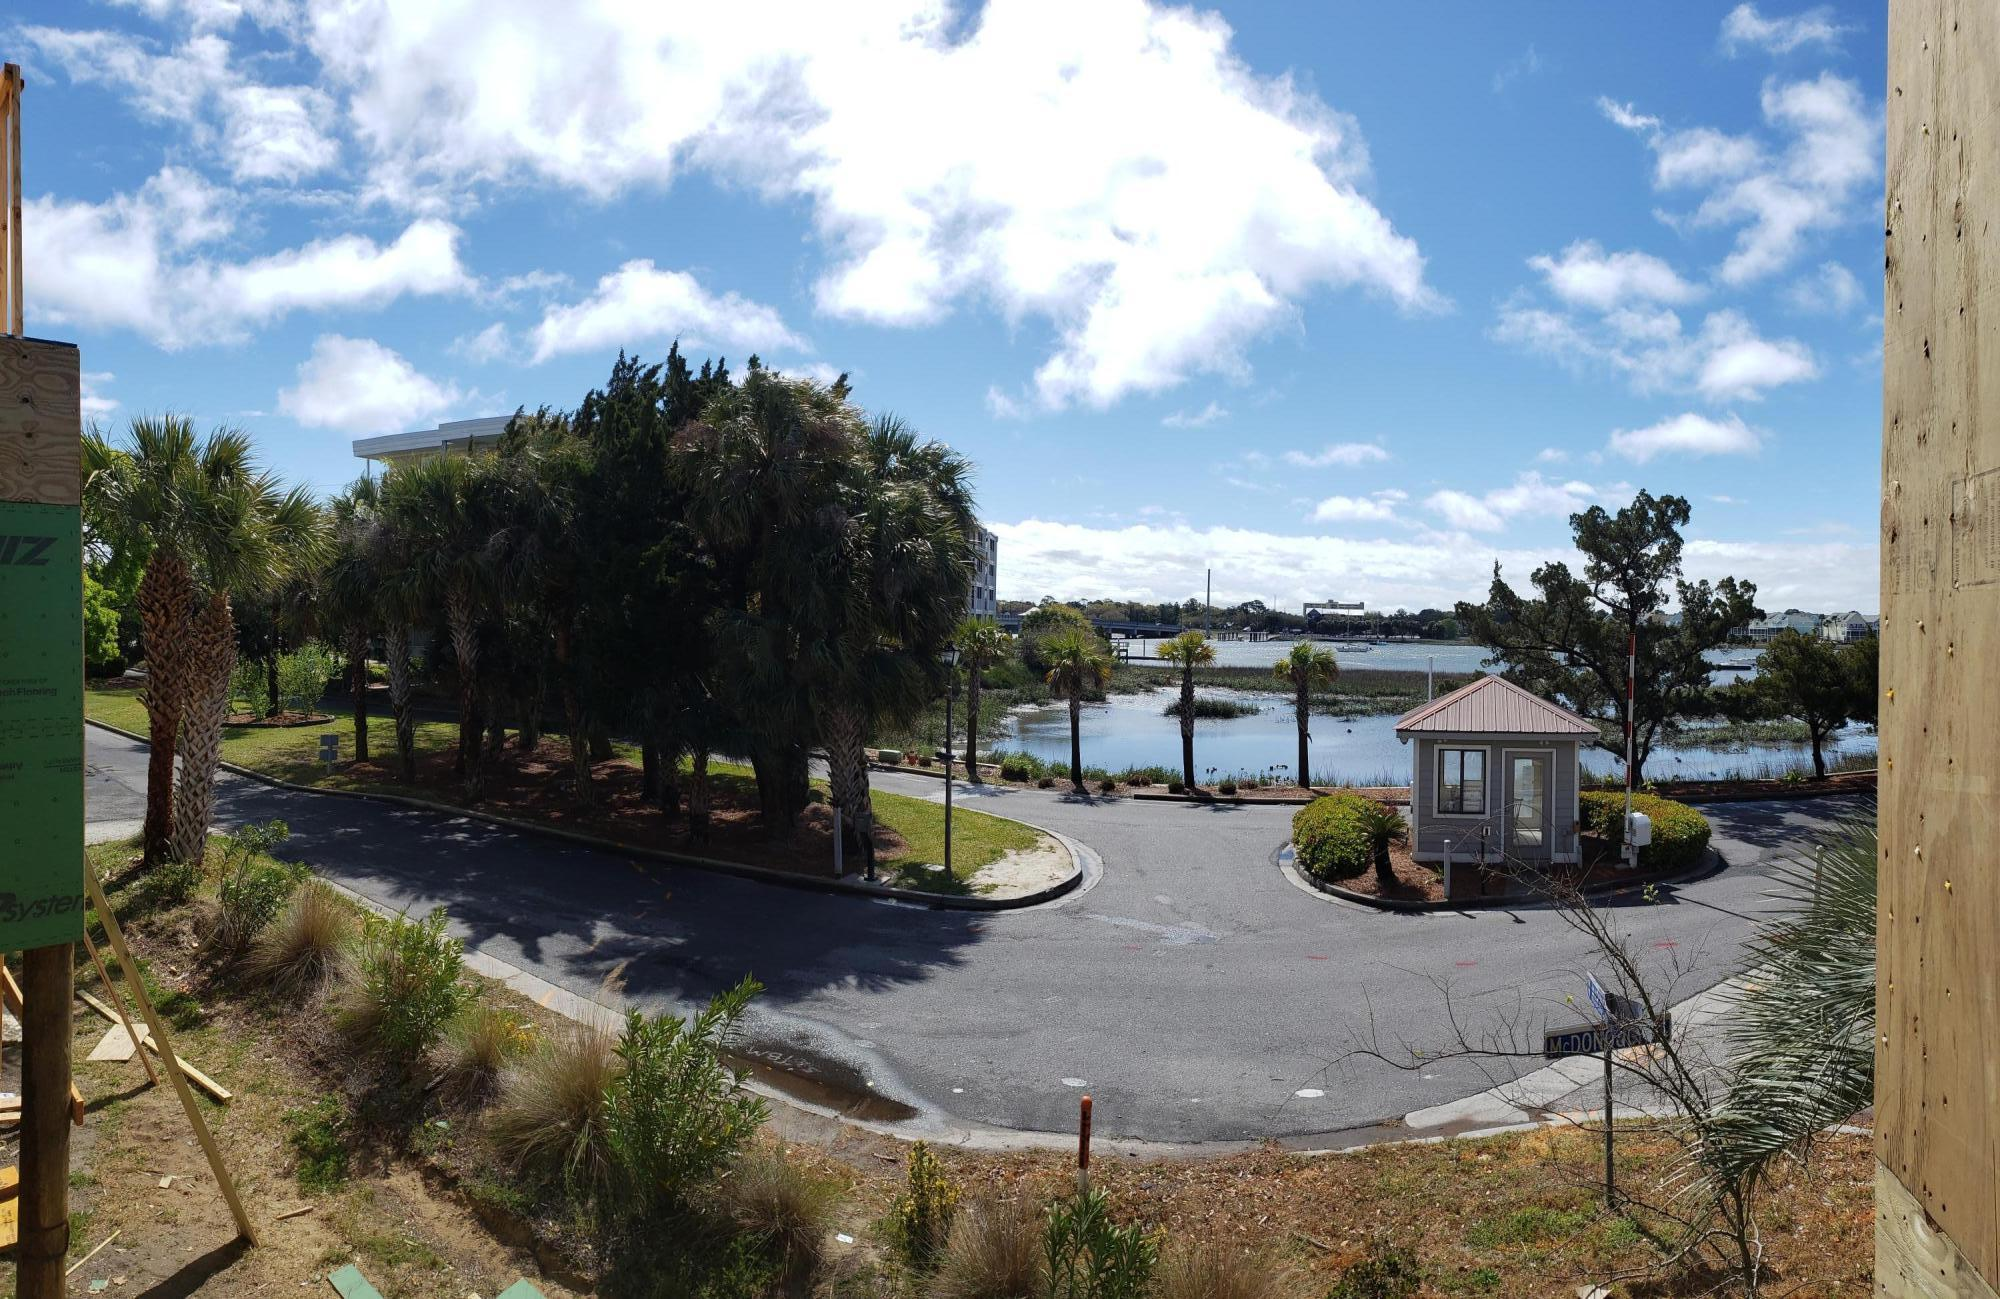 Mariners Cay Homes For Sale - 1004 Mariners Cay, Folly Beach, SC - 24